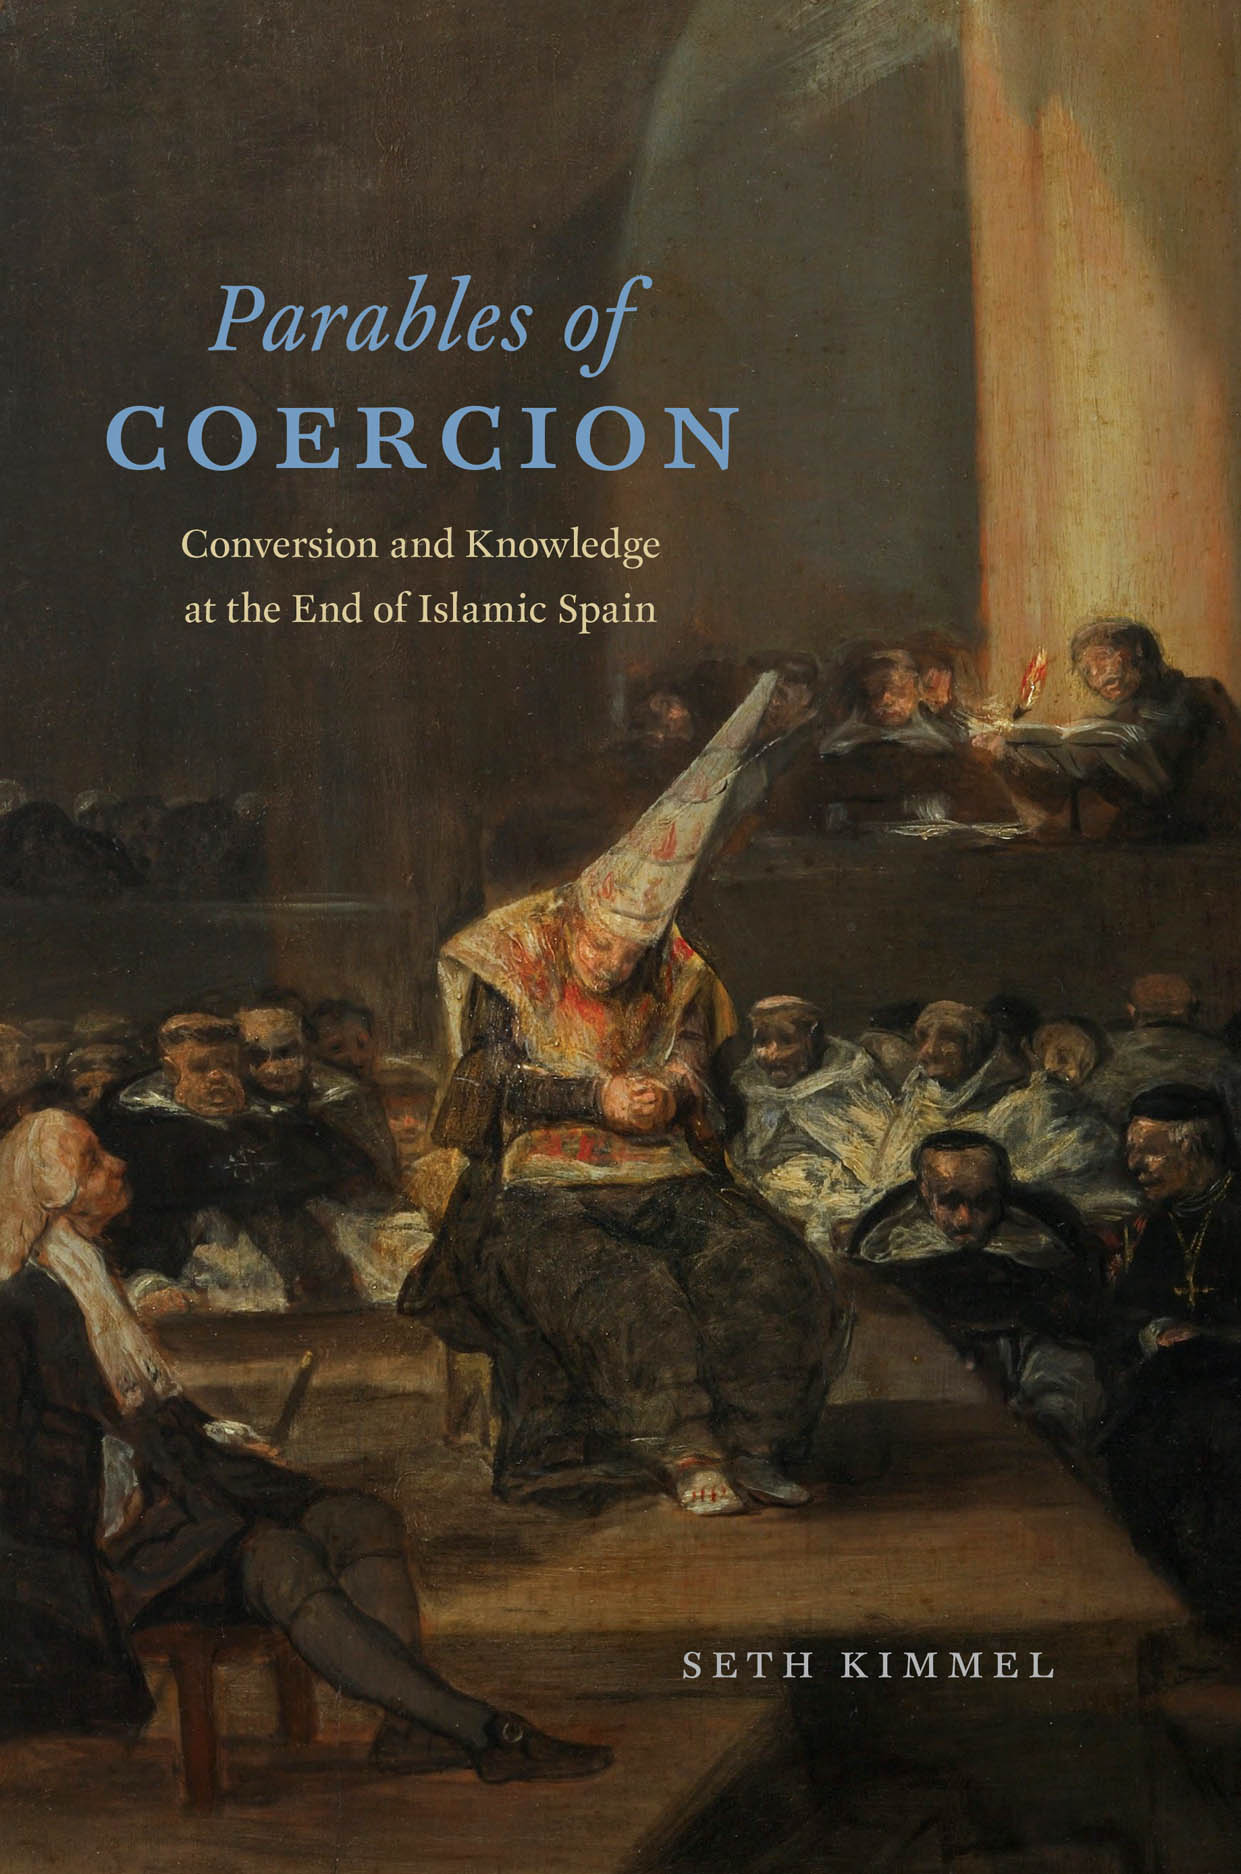 Parables of Coercion: Conversion and Knowledge at the End of Islamic Spain